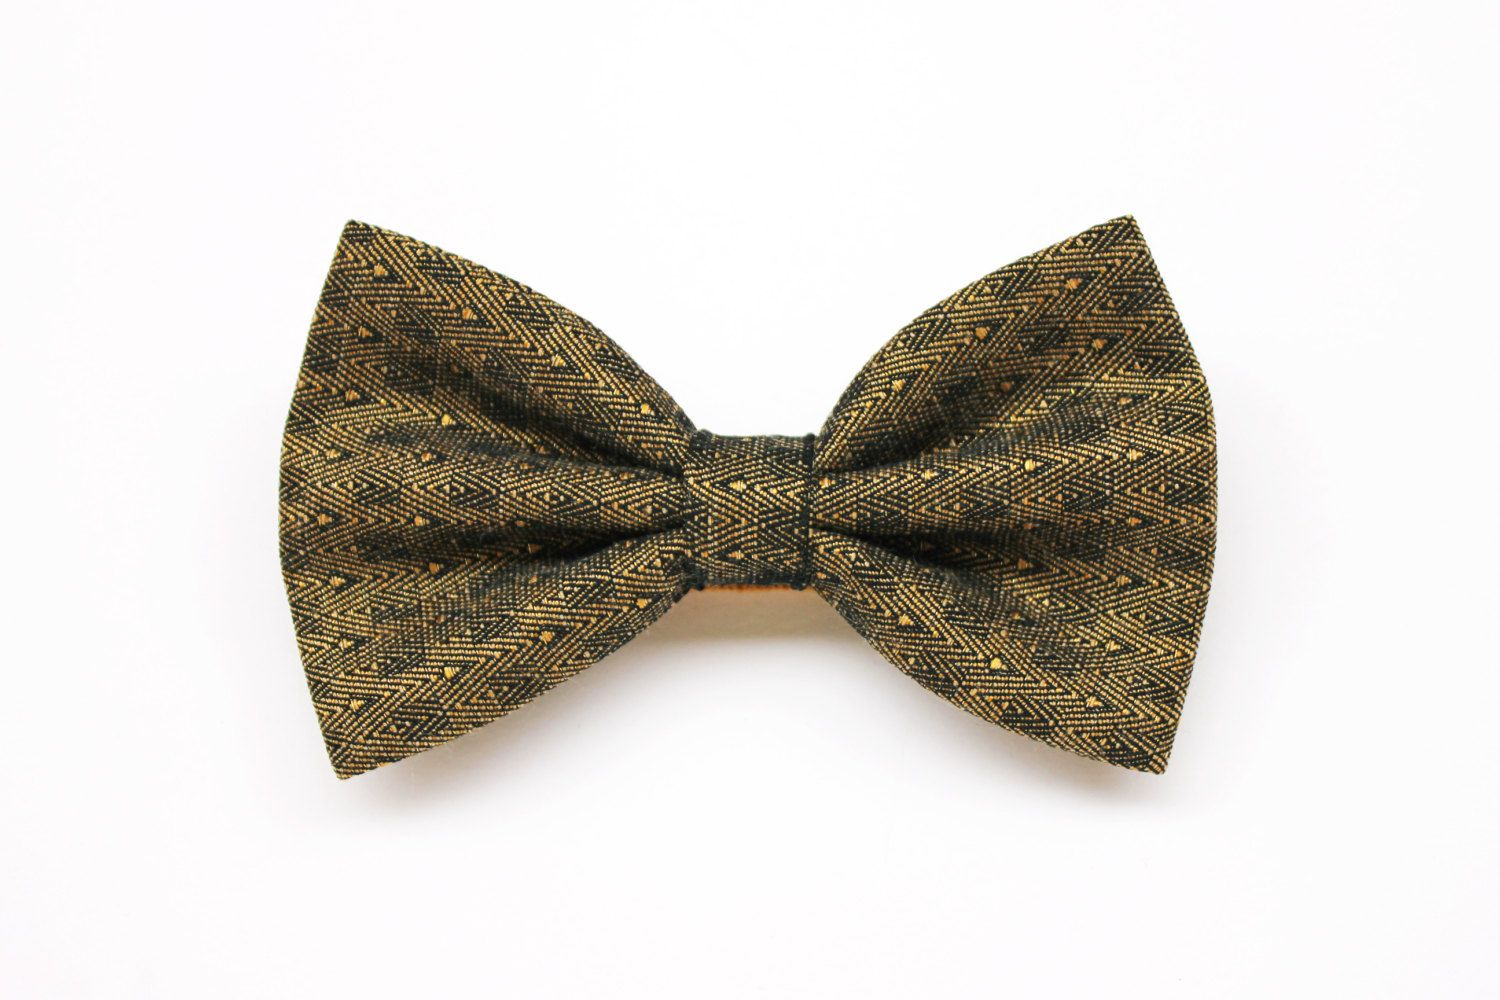 Gold Bronze Bow Tie Vintage Bow Tie For Men Weddings Gold Accessories Gold Bow Tie For The Groom Tie Elegant Gold In Vintage Bow Tie Mens Bow Ties Gold Bow Tie